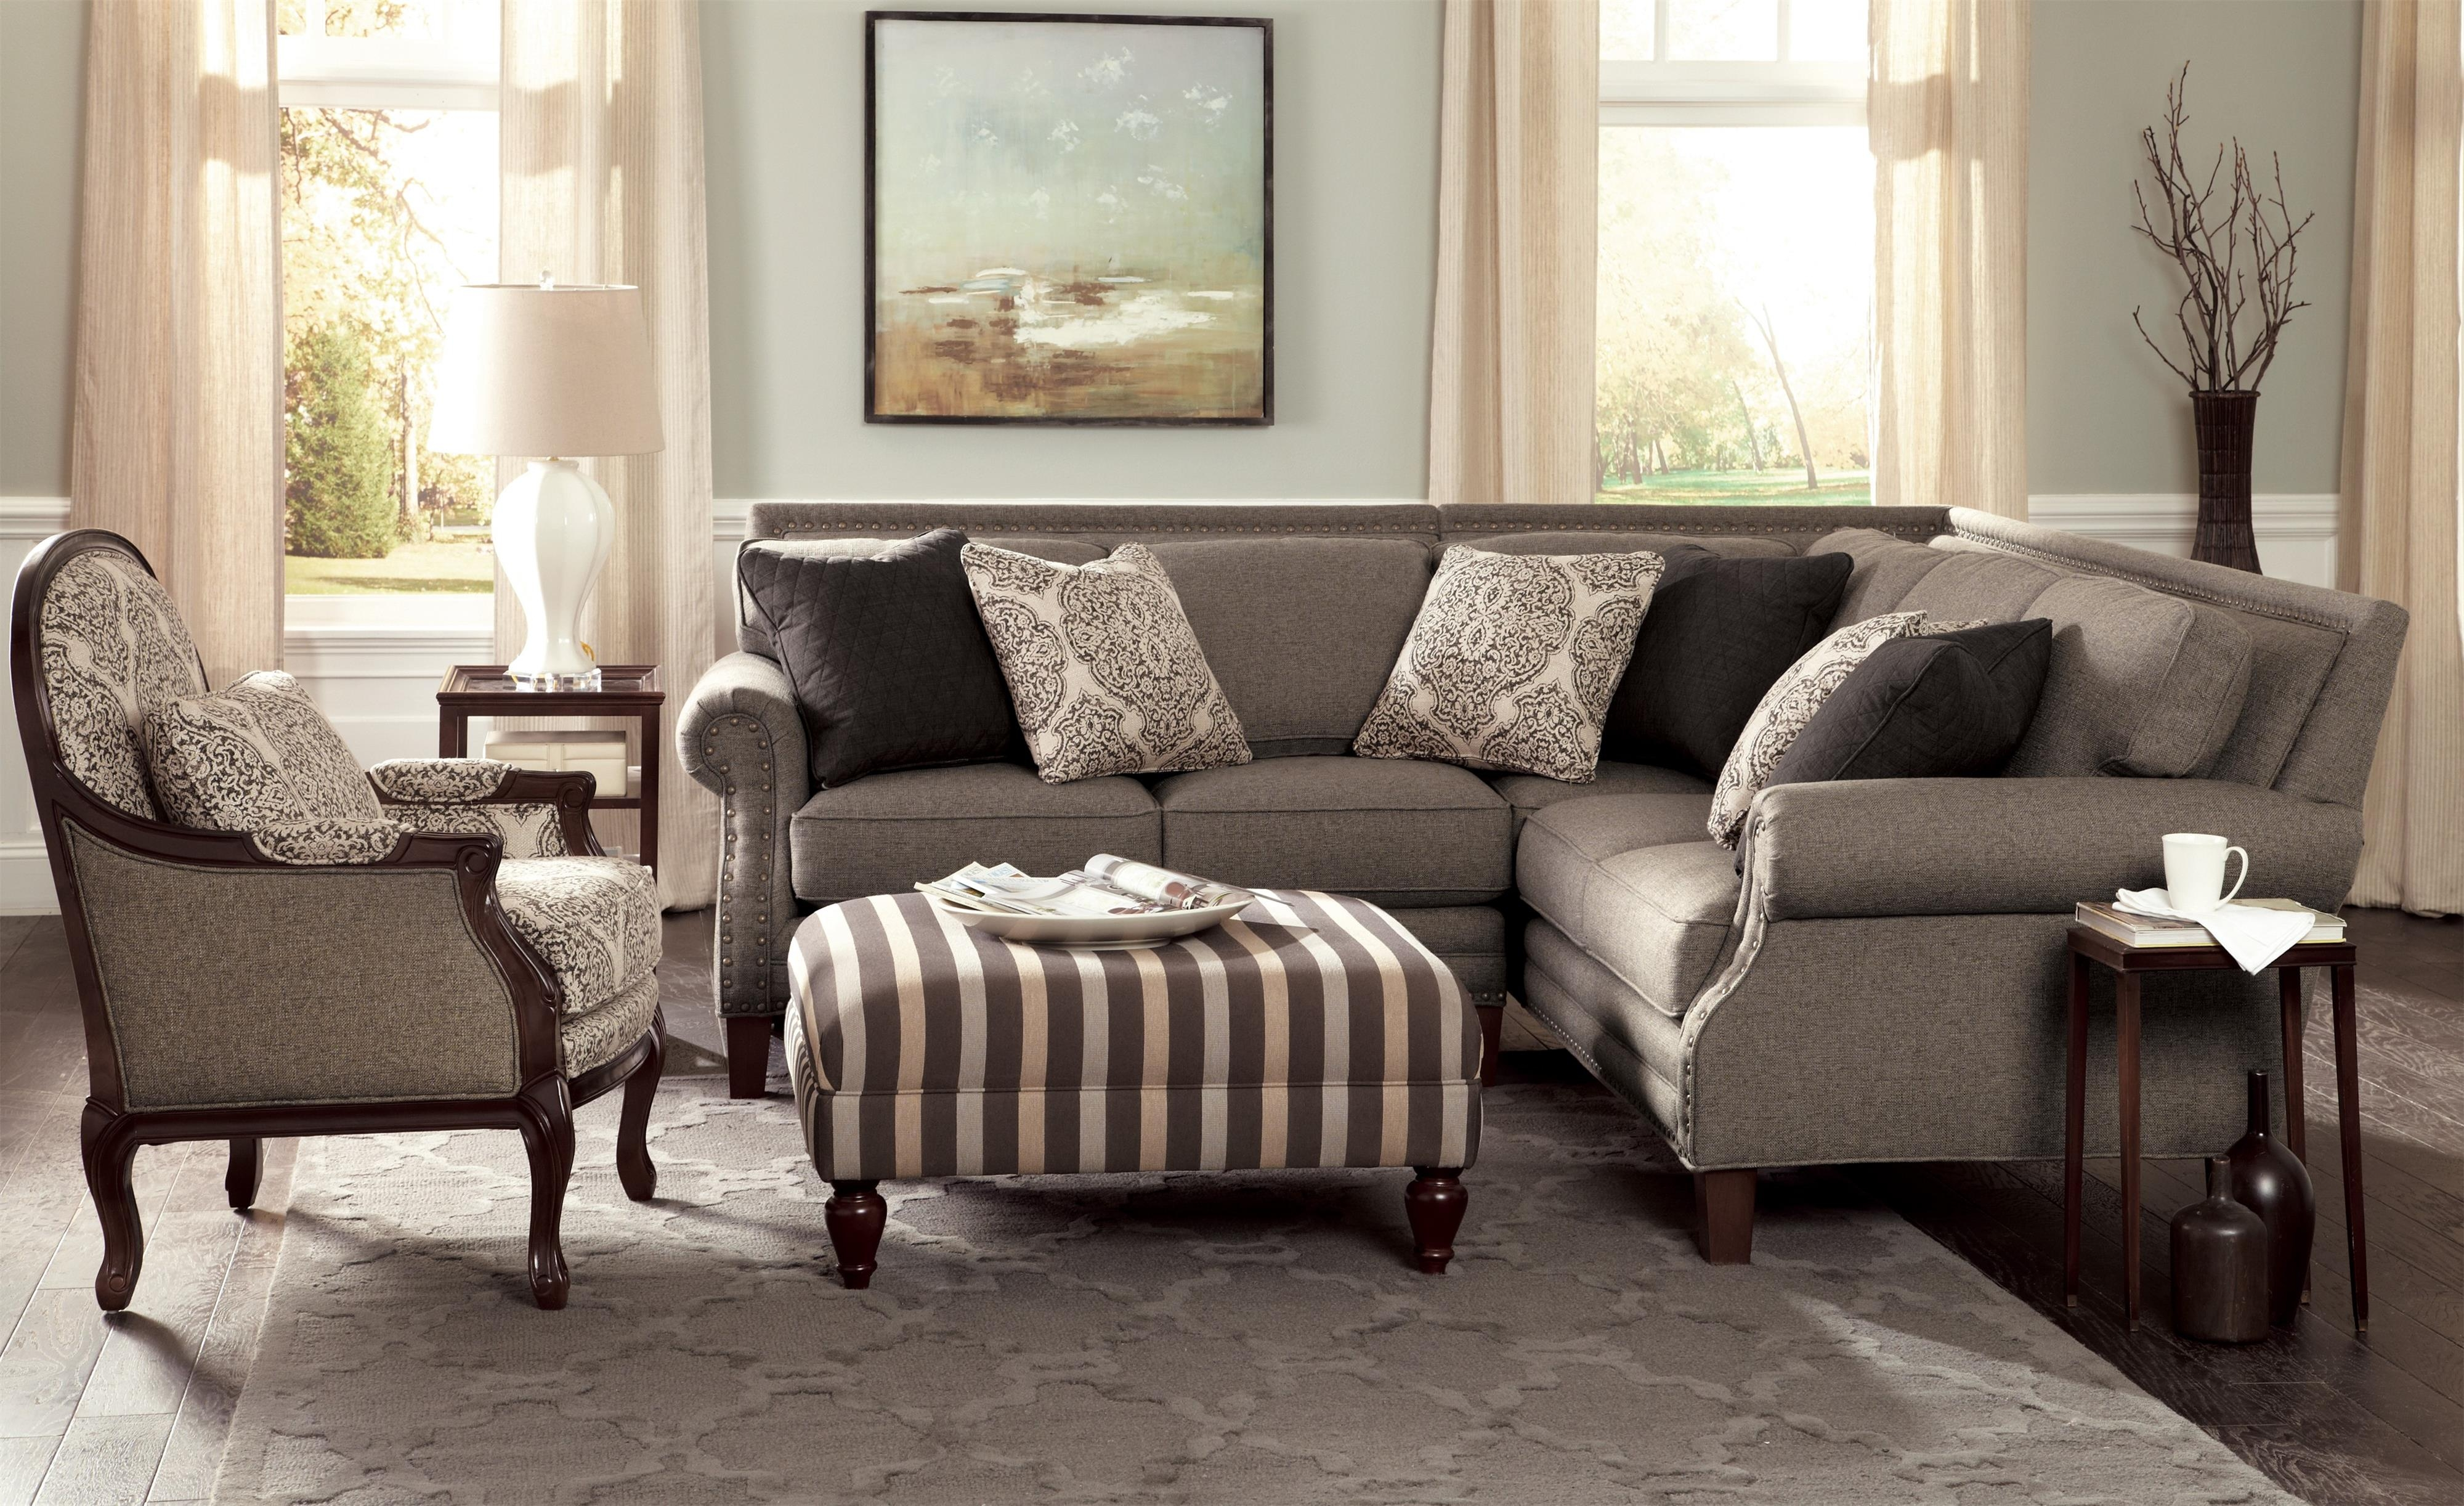 Craftmaster Nichols Two Piece Sectional Sofa With Rolled Arms And In Craftmaster Sectional Sofa (Image 12 of 15)